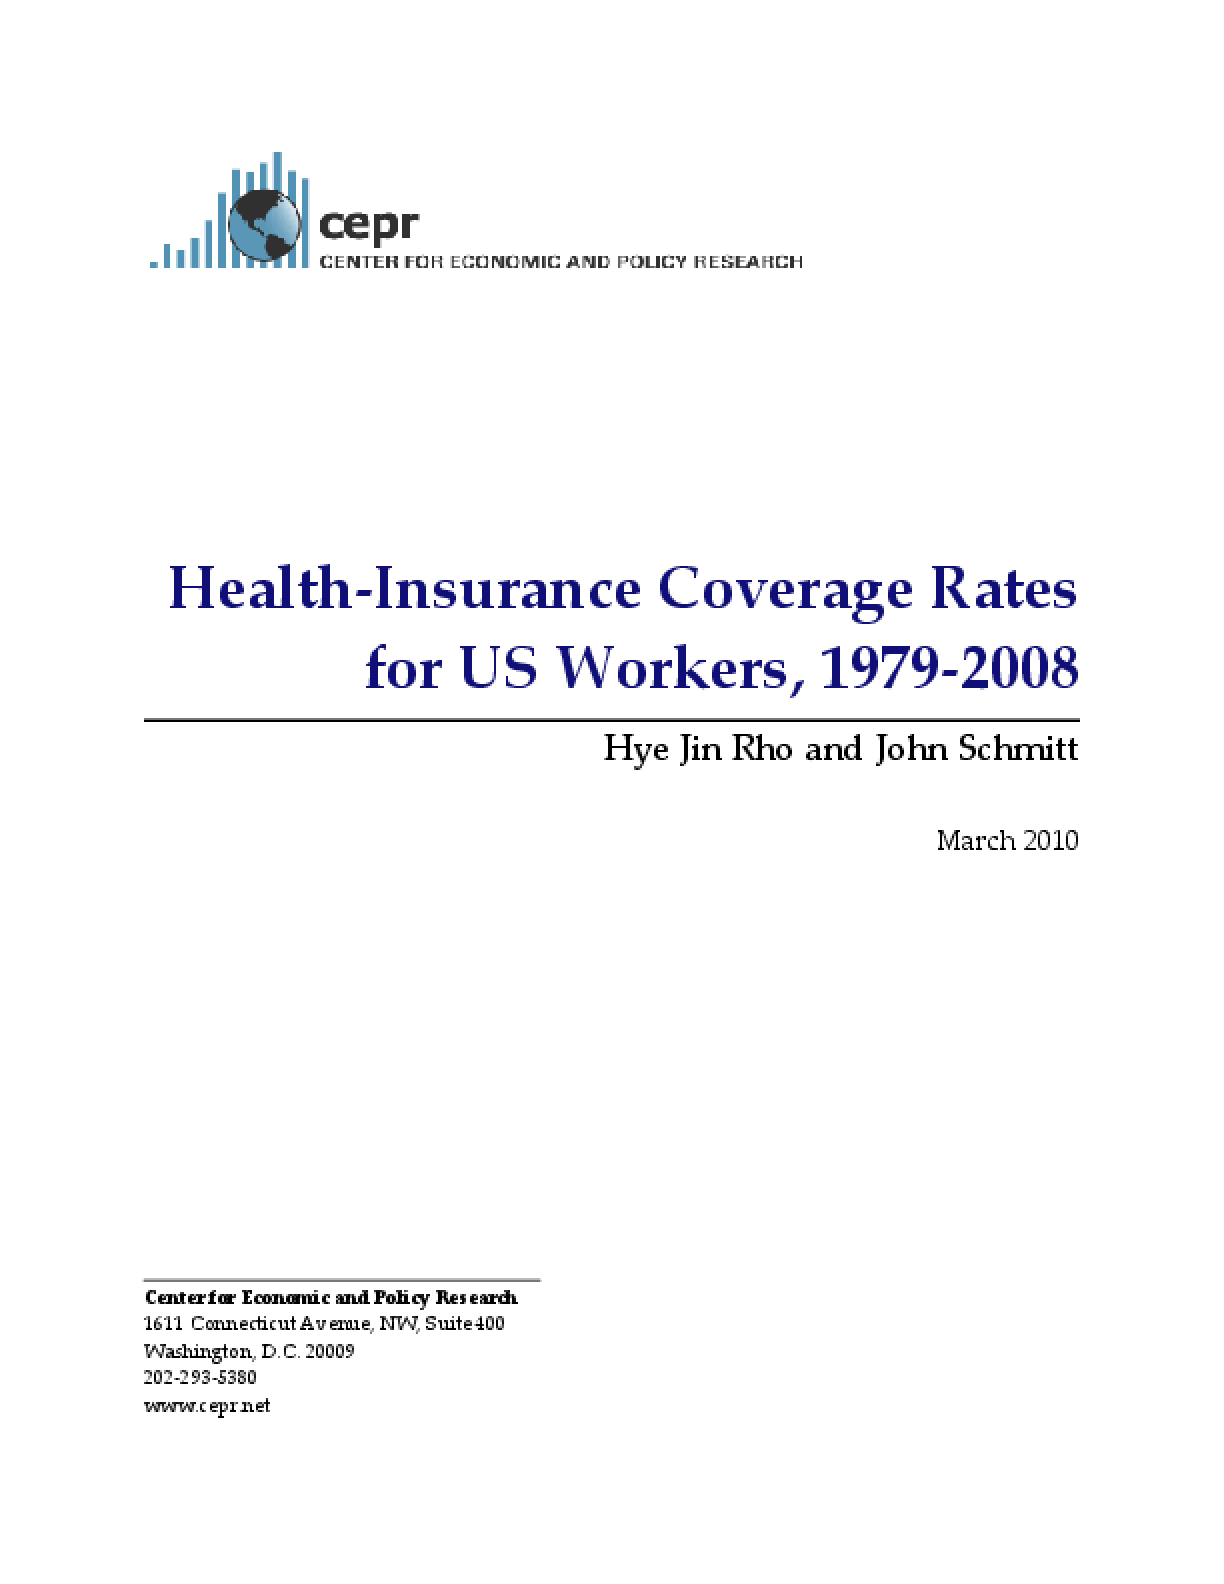 Health-Insurance Coverage Rates for US Workers, 1979-2008